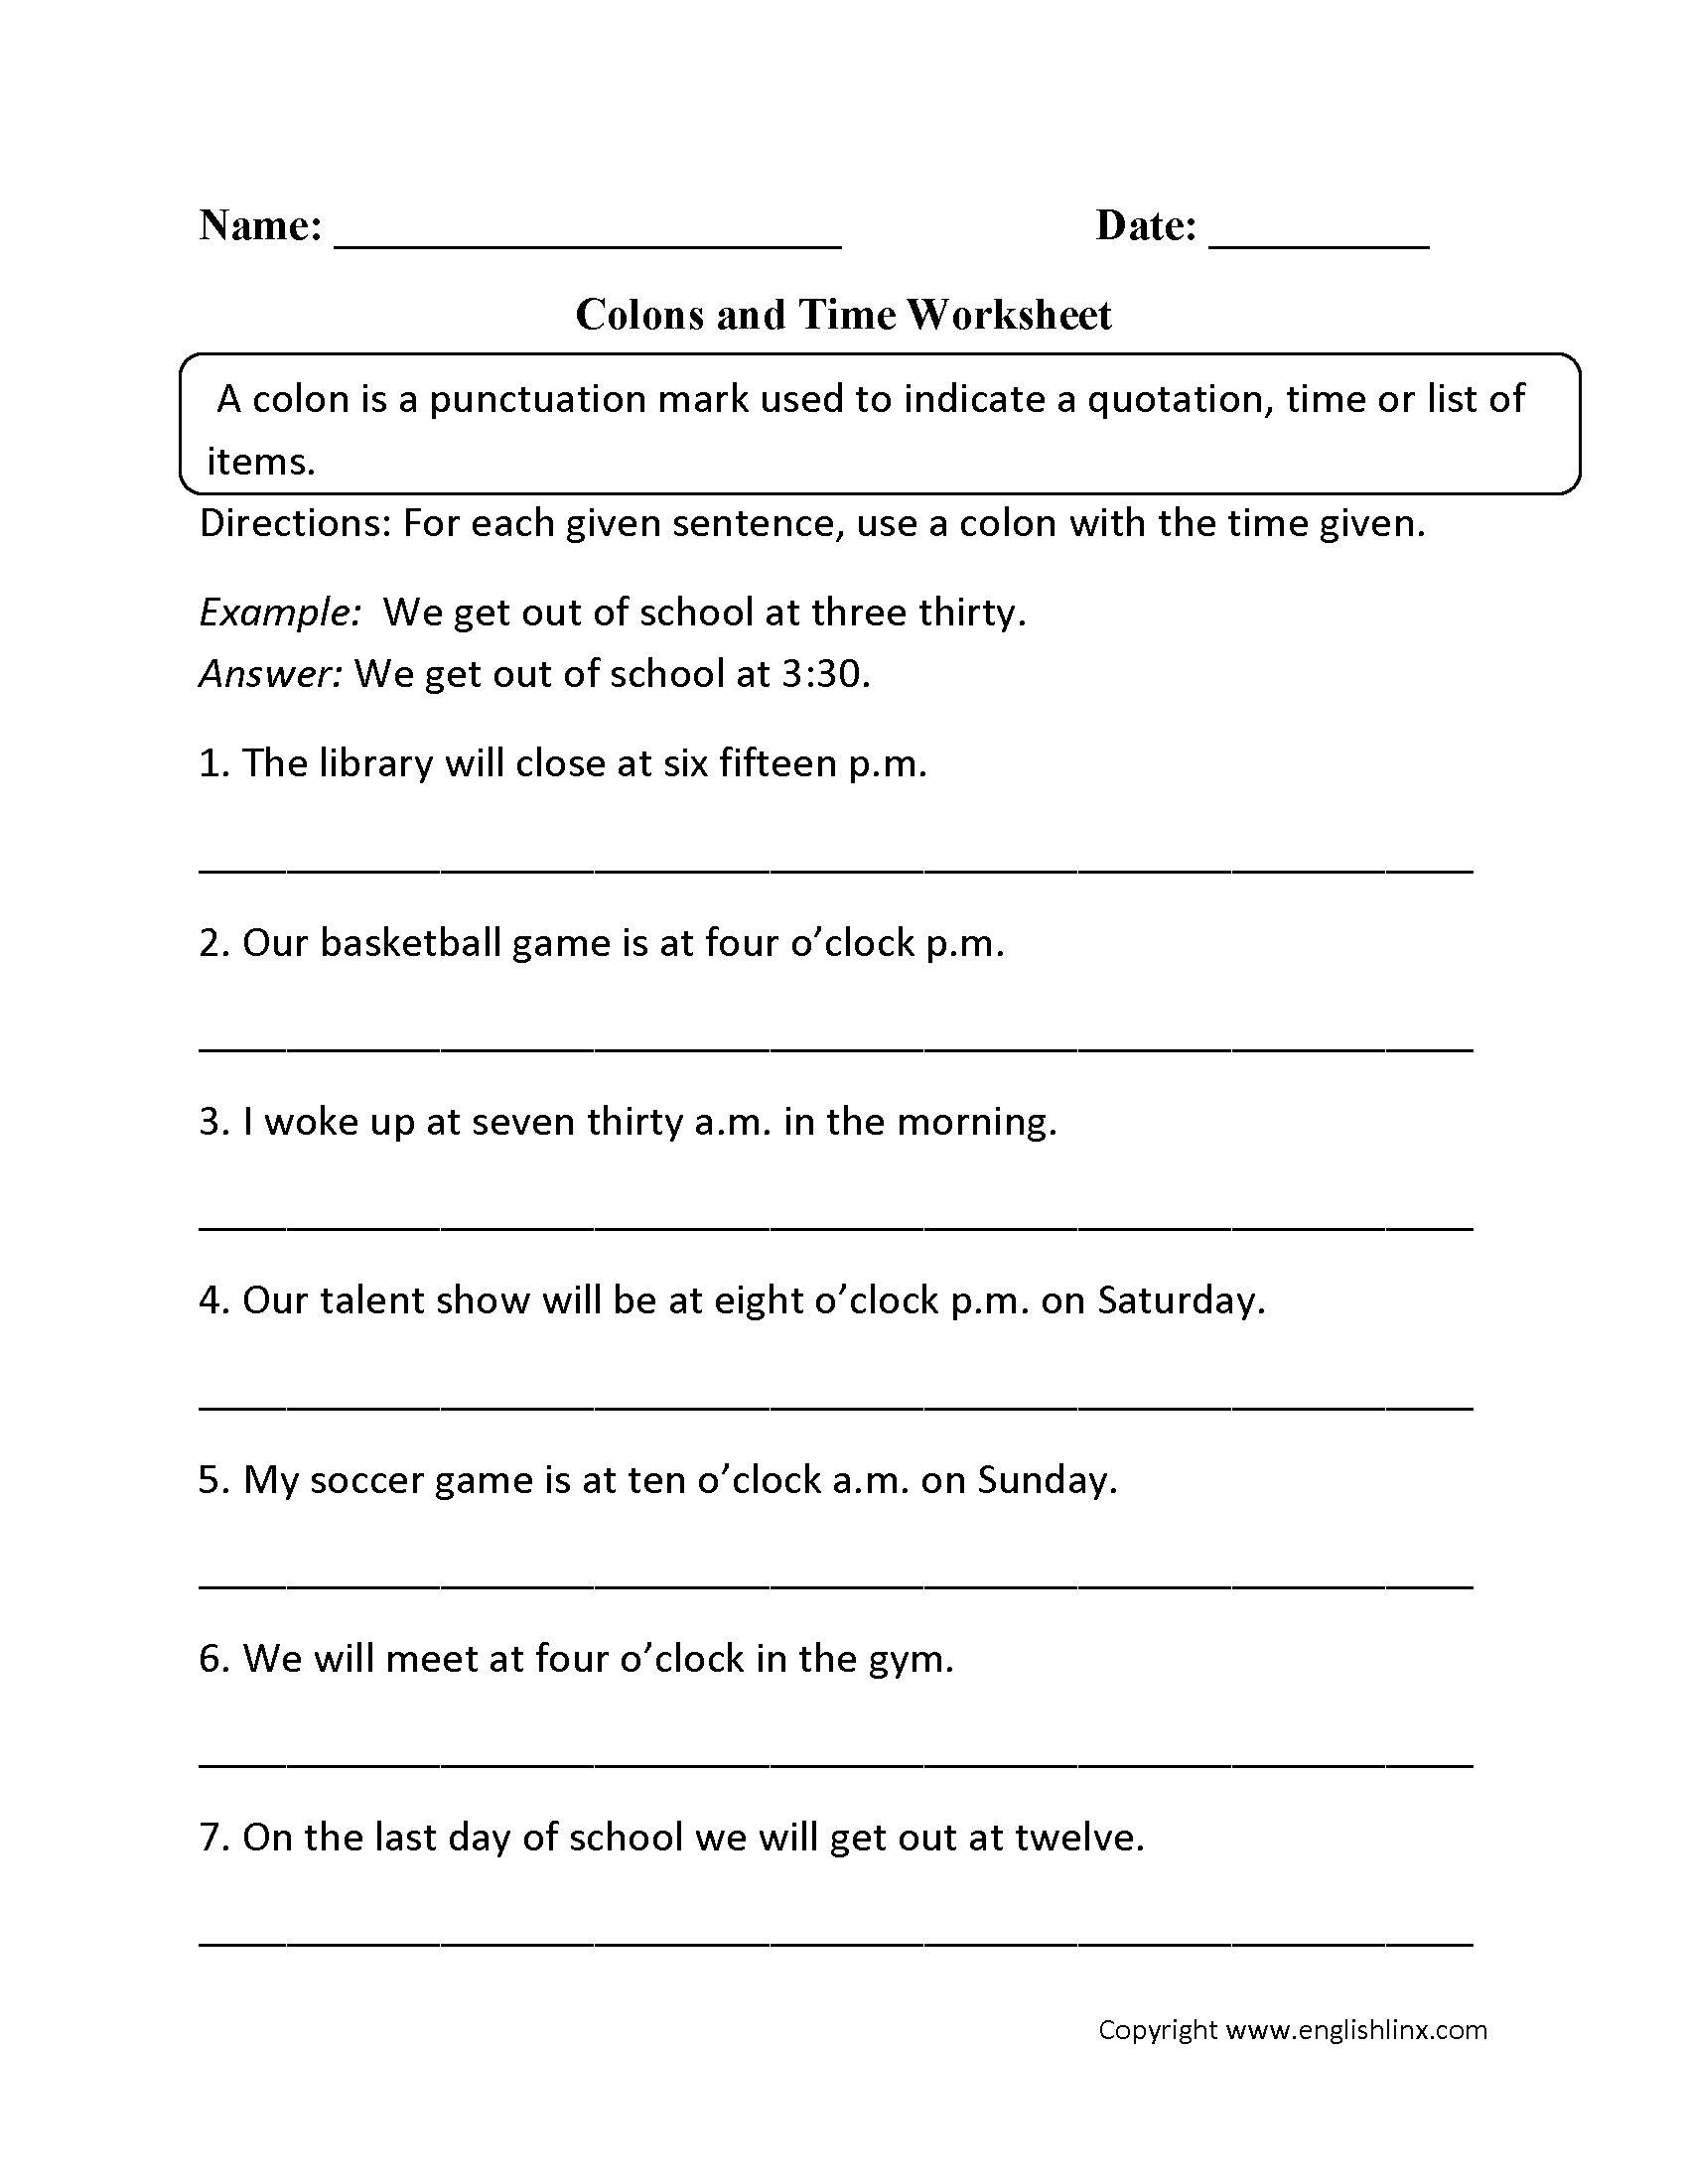 Grammar Worksheets  Punctuation Worksheets And Hyphens And Dashes Worksheet Answers